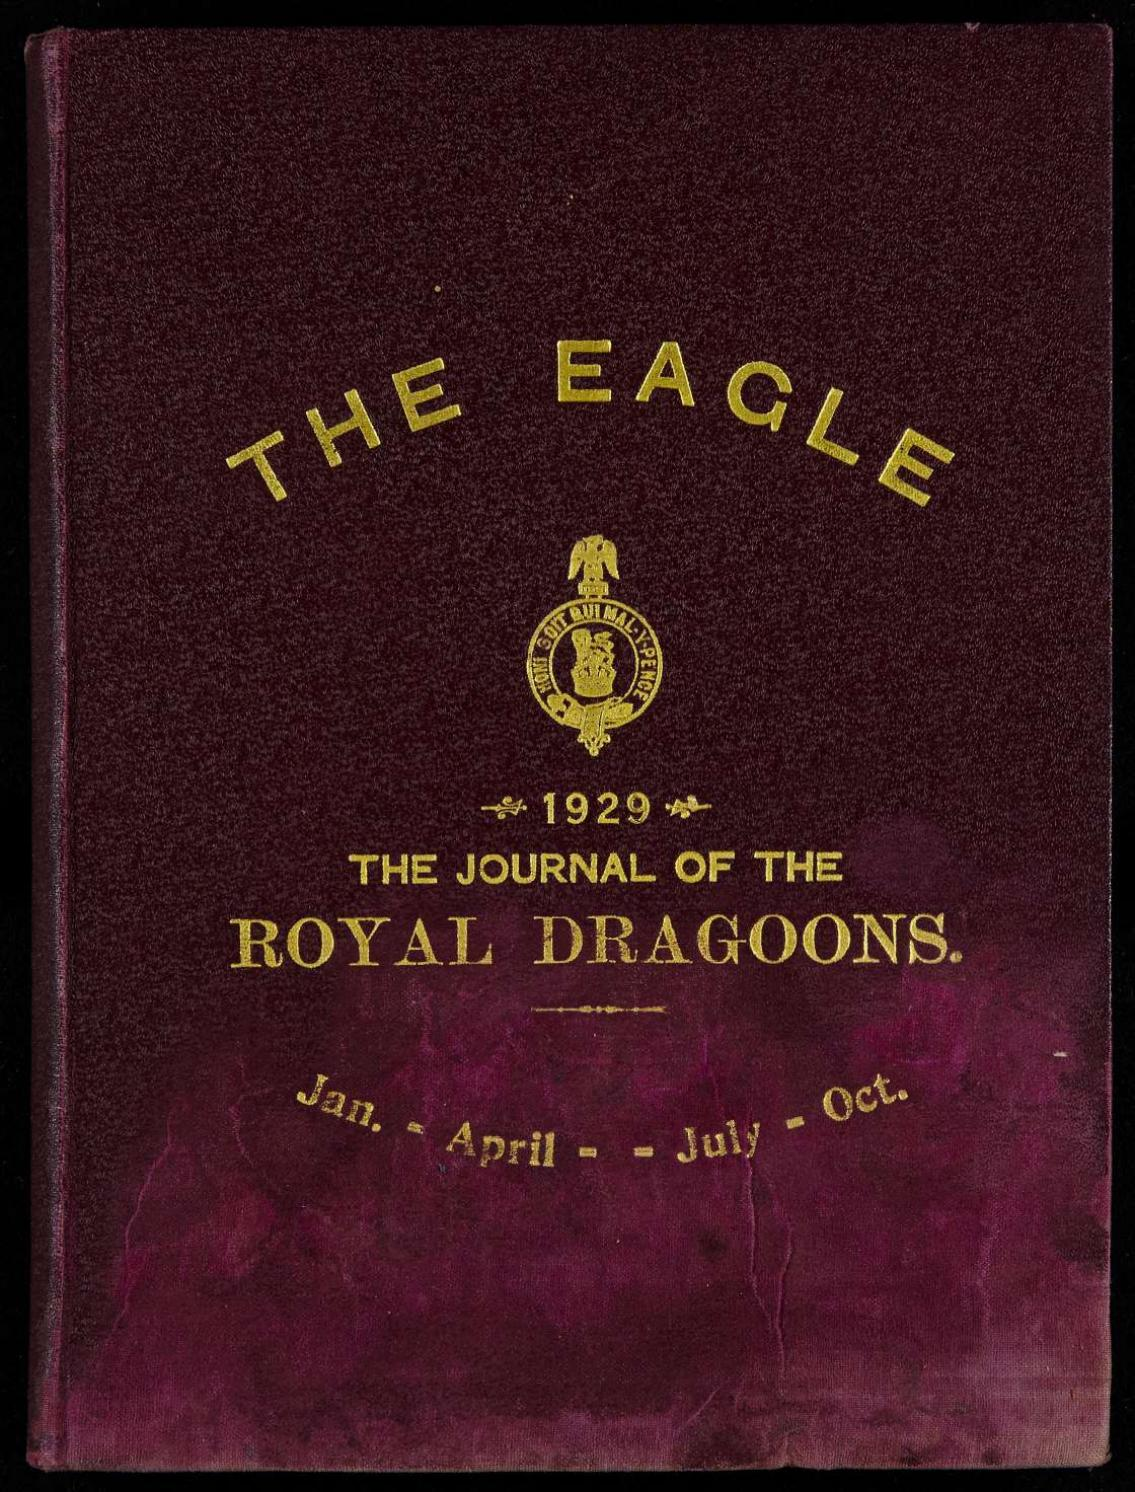 The eagle royal dragoons bound books the eagle 1929 ilovepdf compressed by  RHG/D Reg Sec - issuu